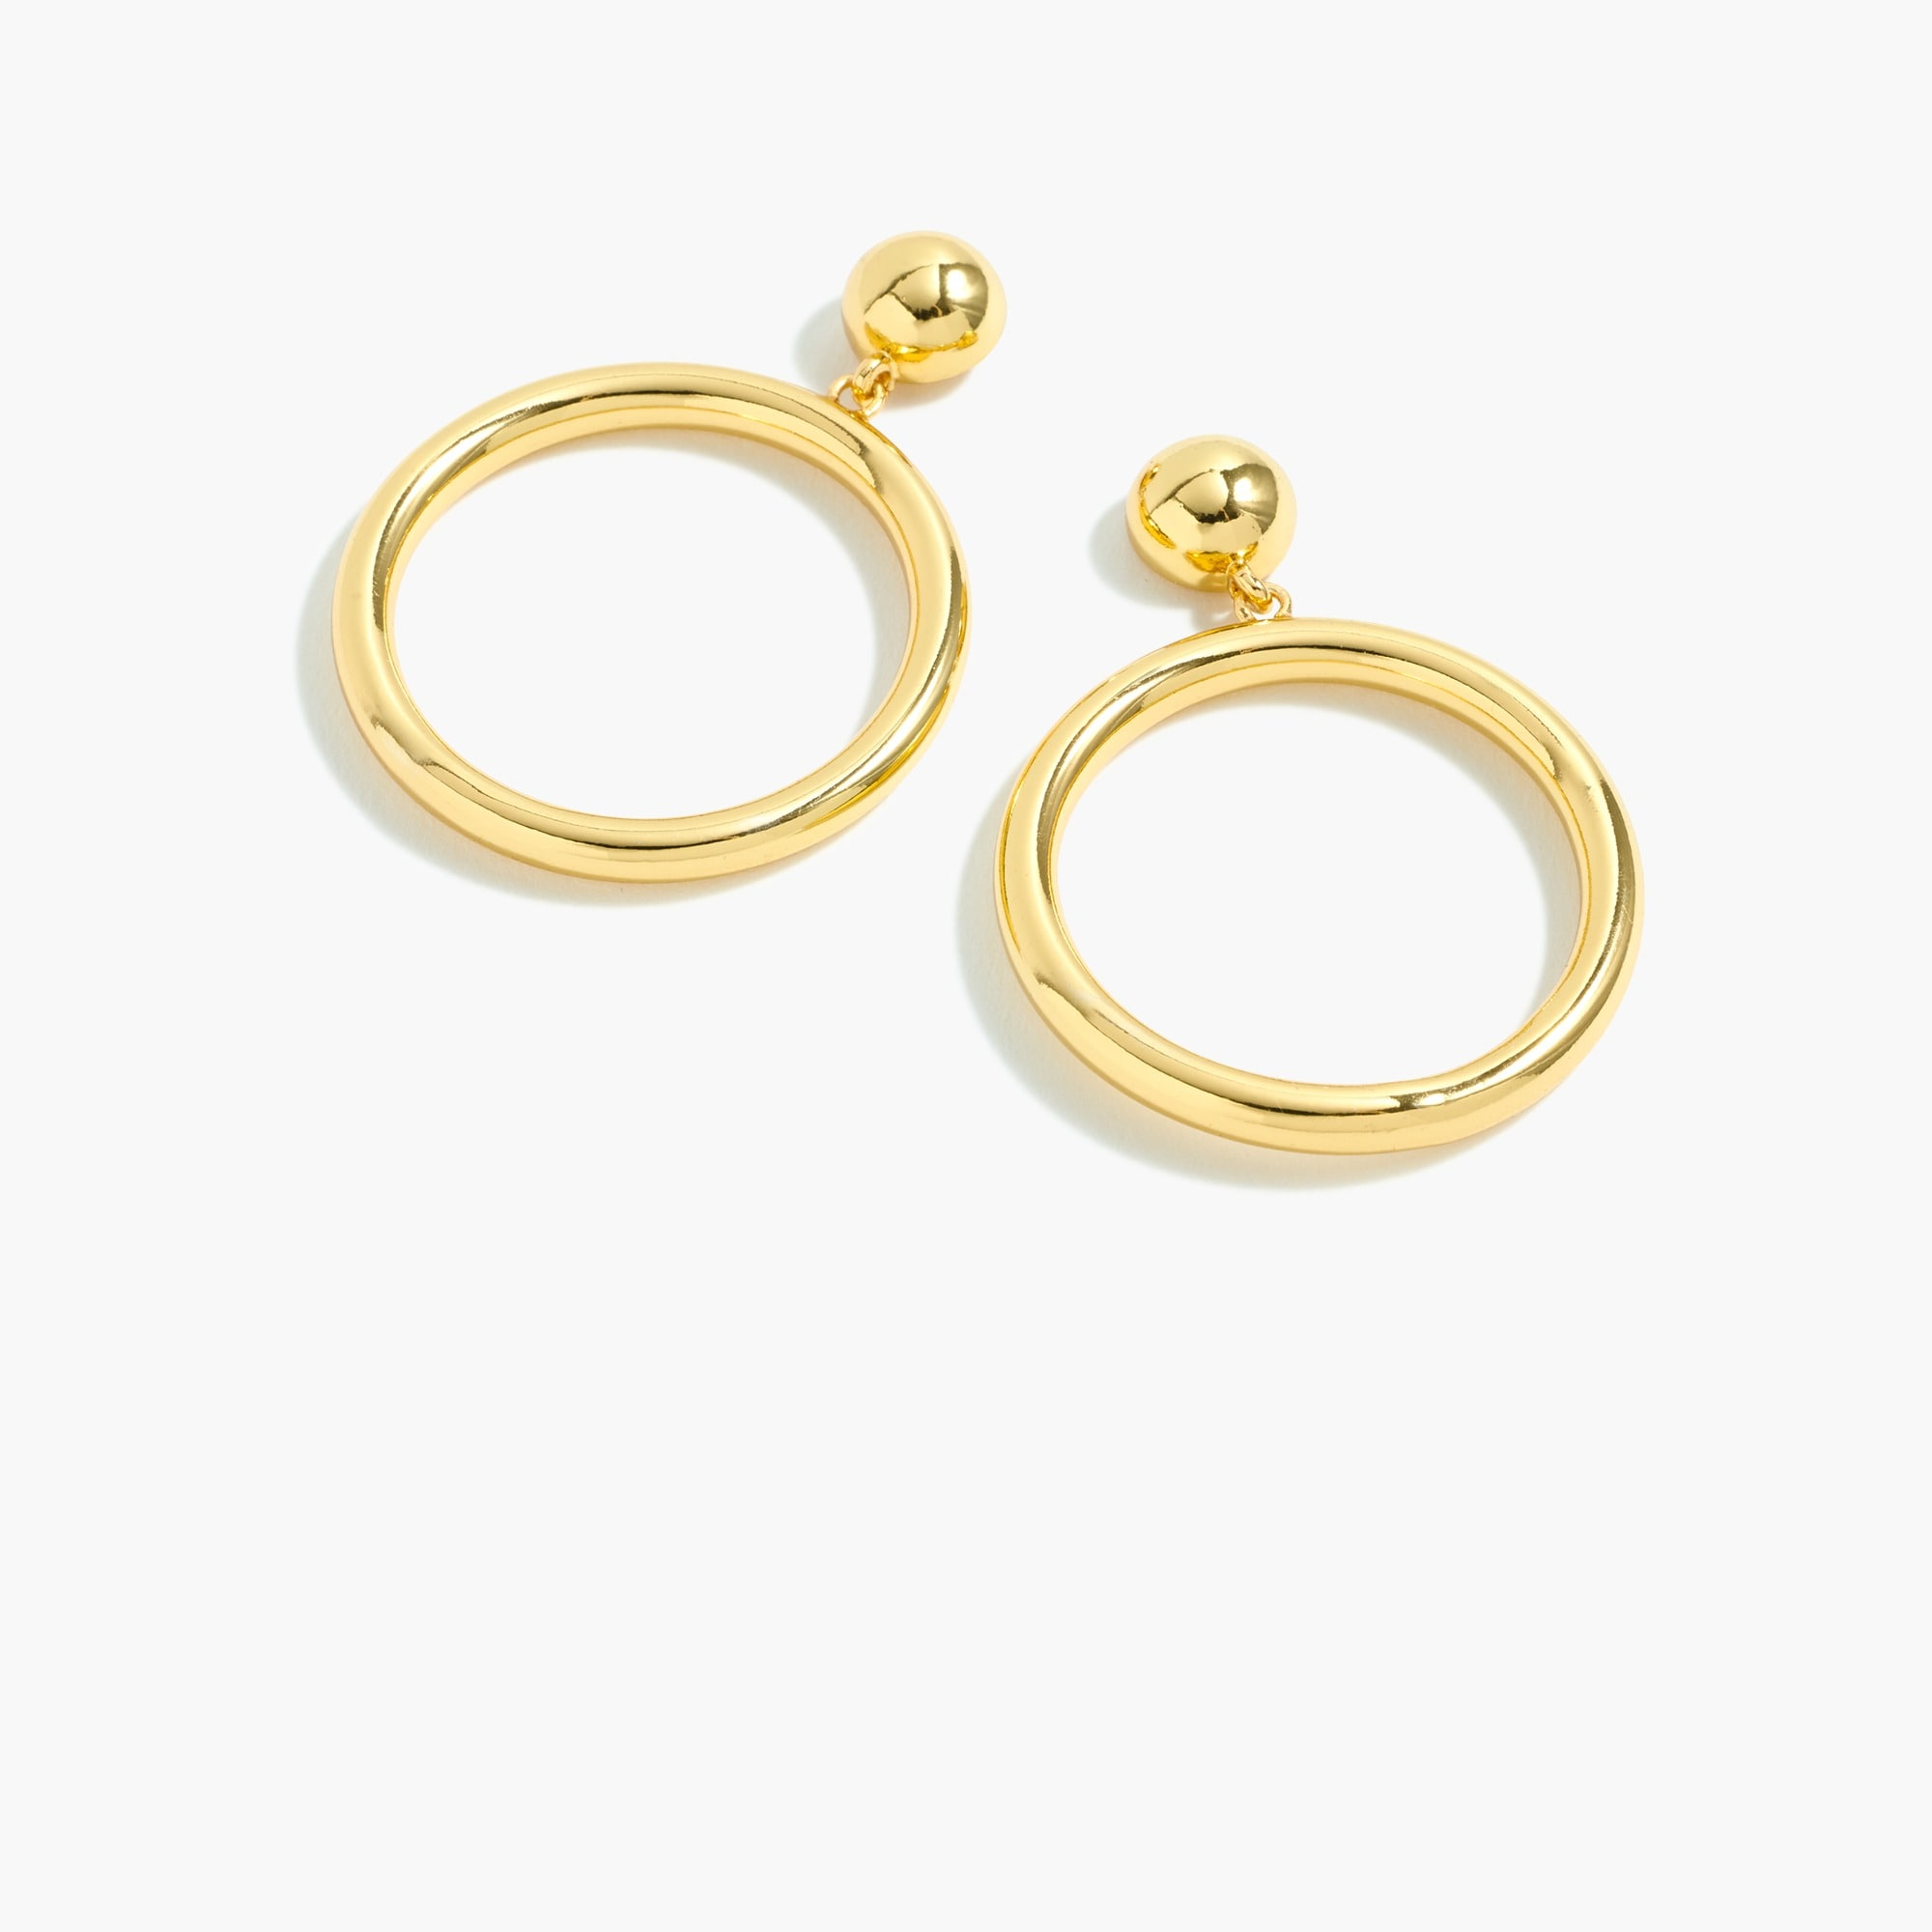 Image 2 for Gold circle earrings